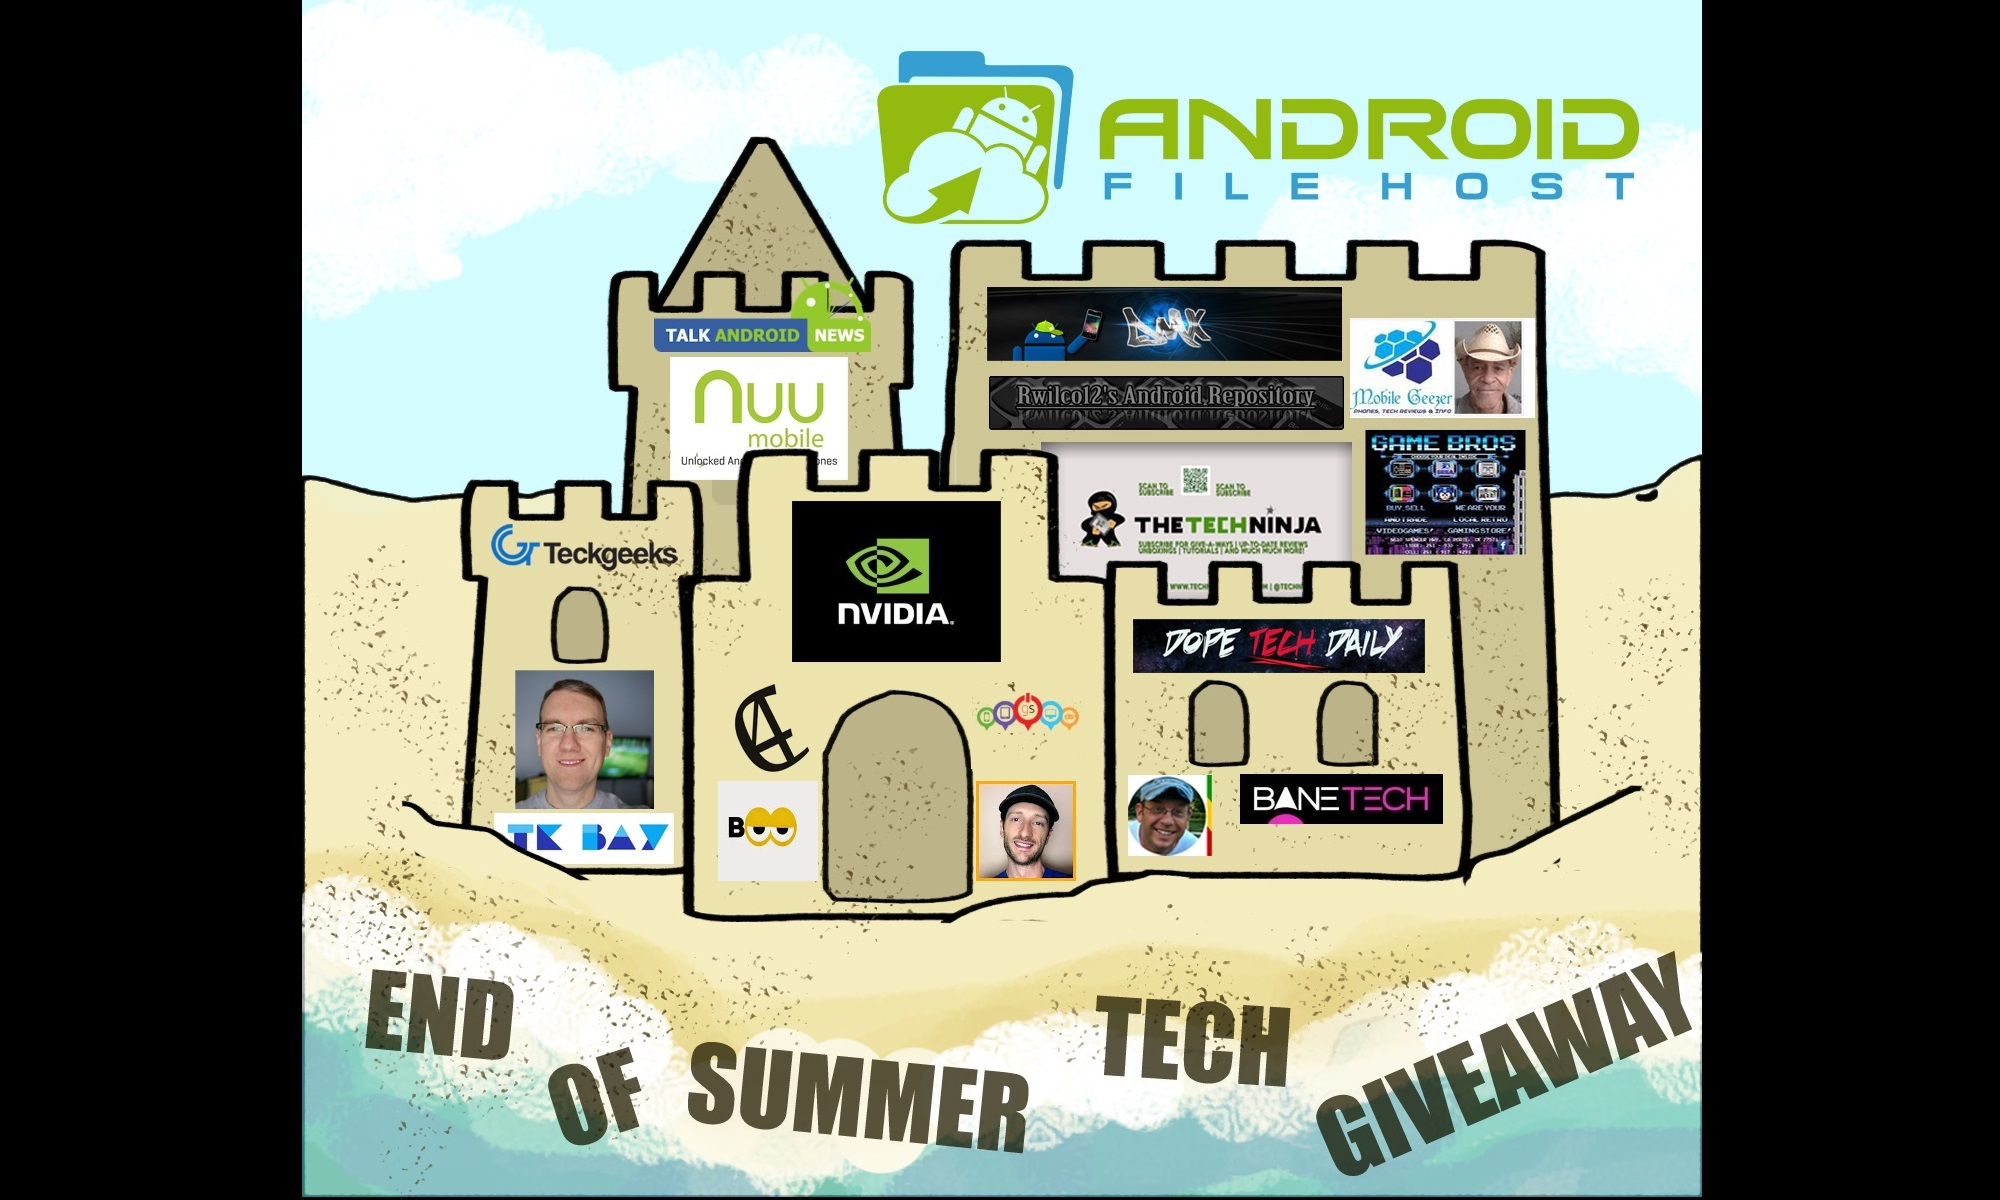 End of Summer Tech Giveaway!